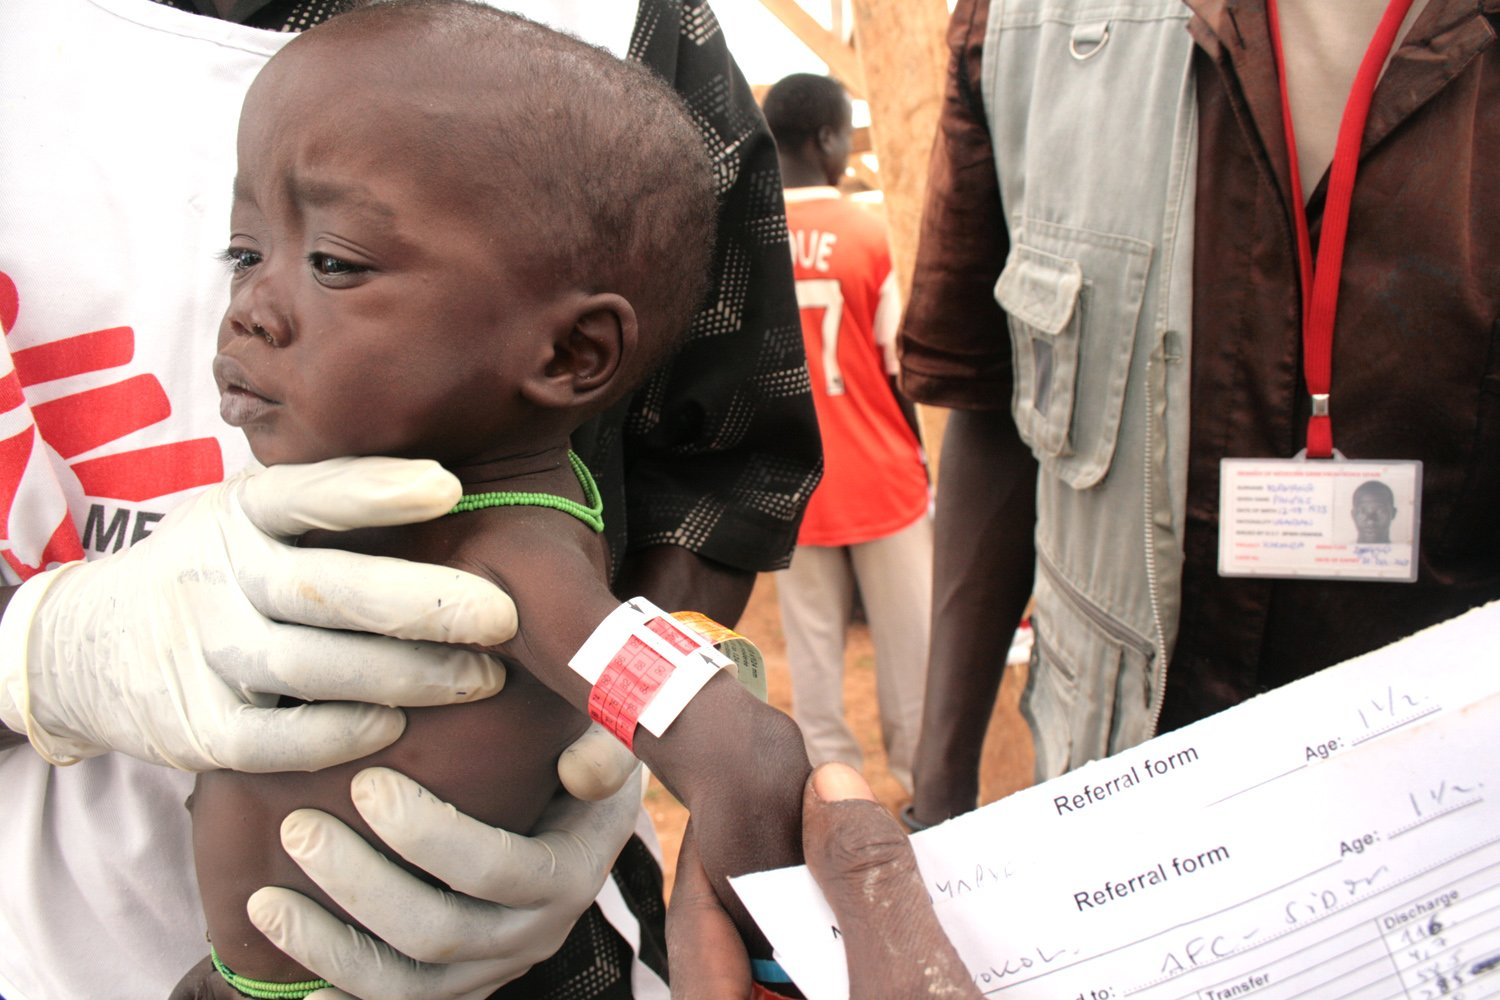 A health worker uses the strip on the child's upper hand to determine the level of malnutrition. In this case, the child was found to be malnourished.